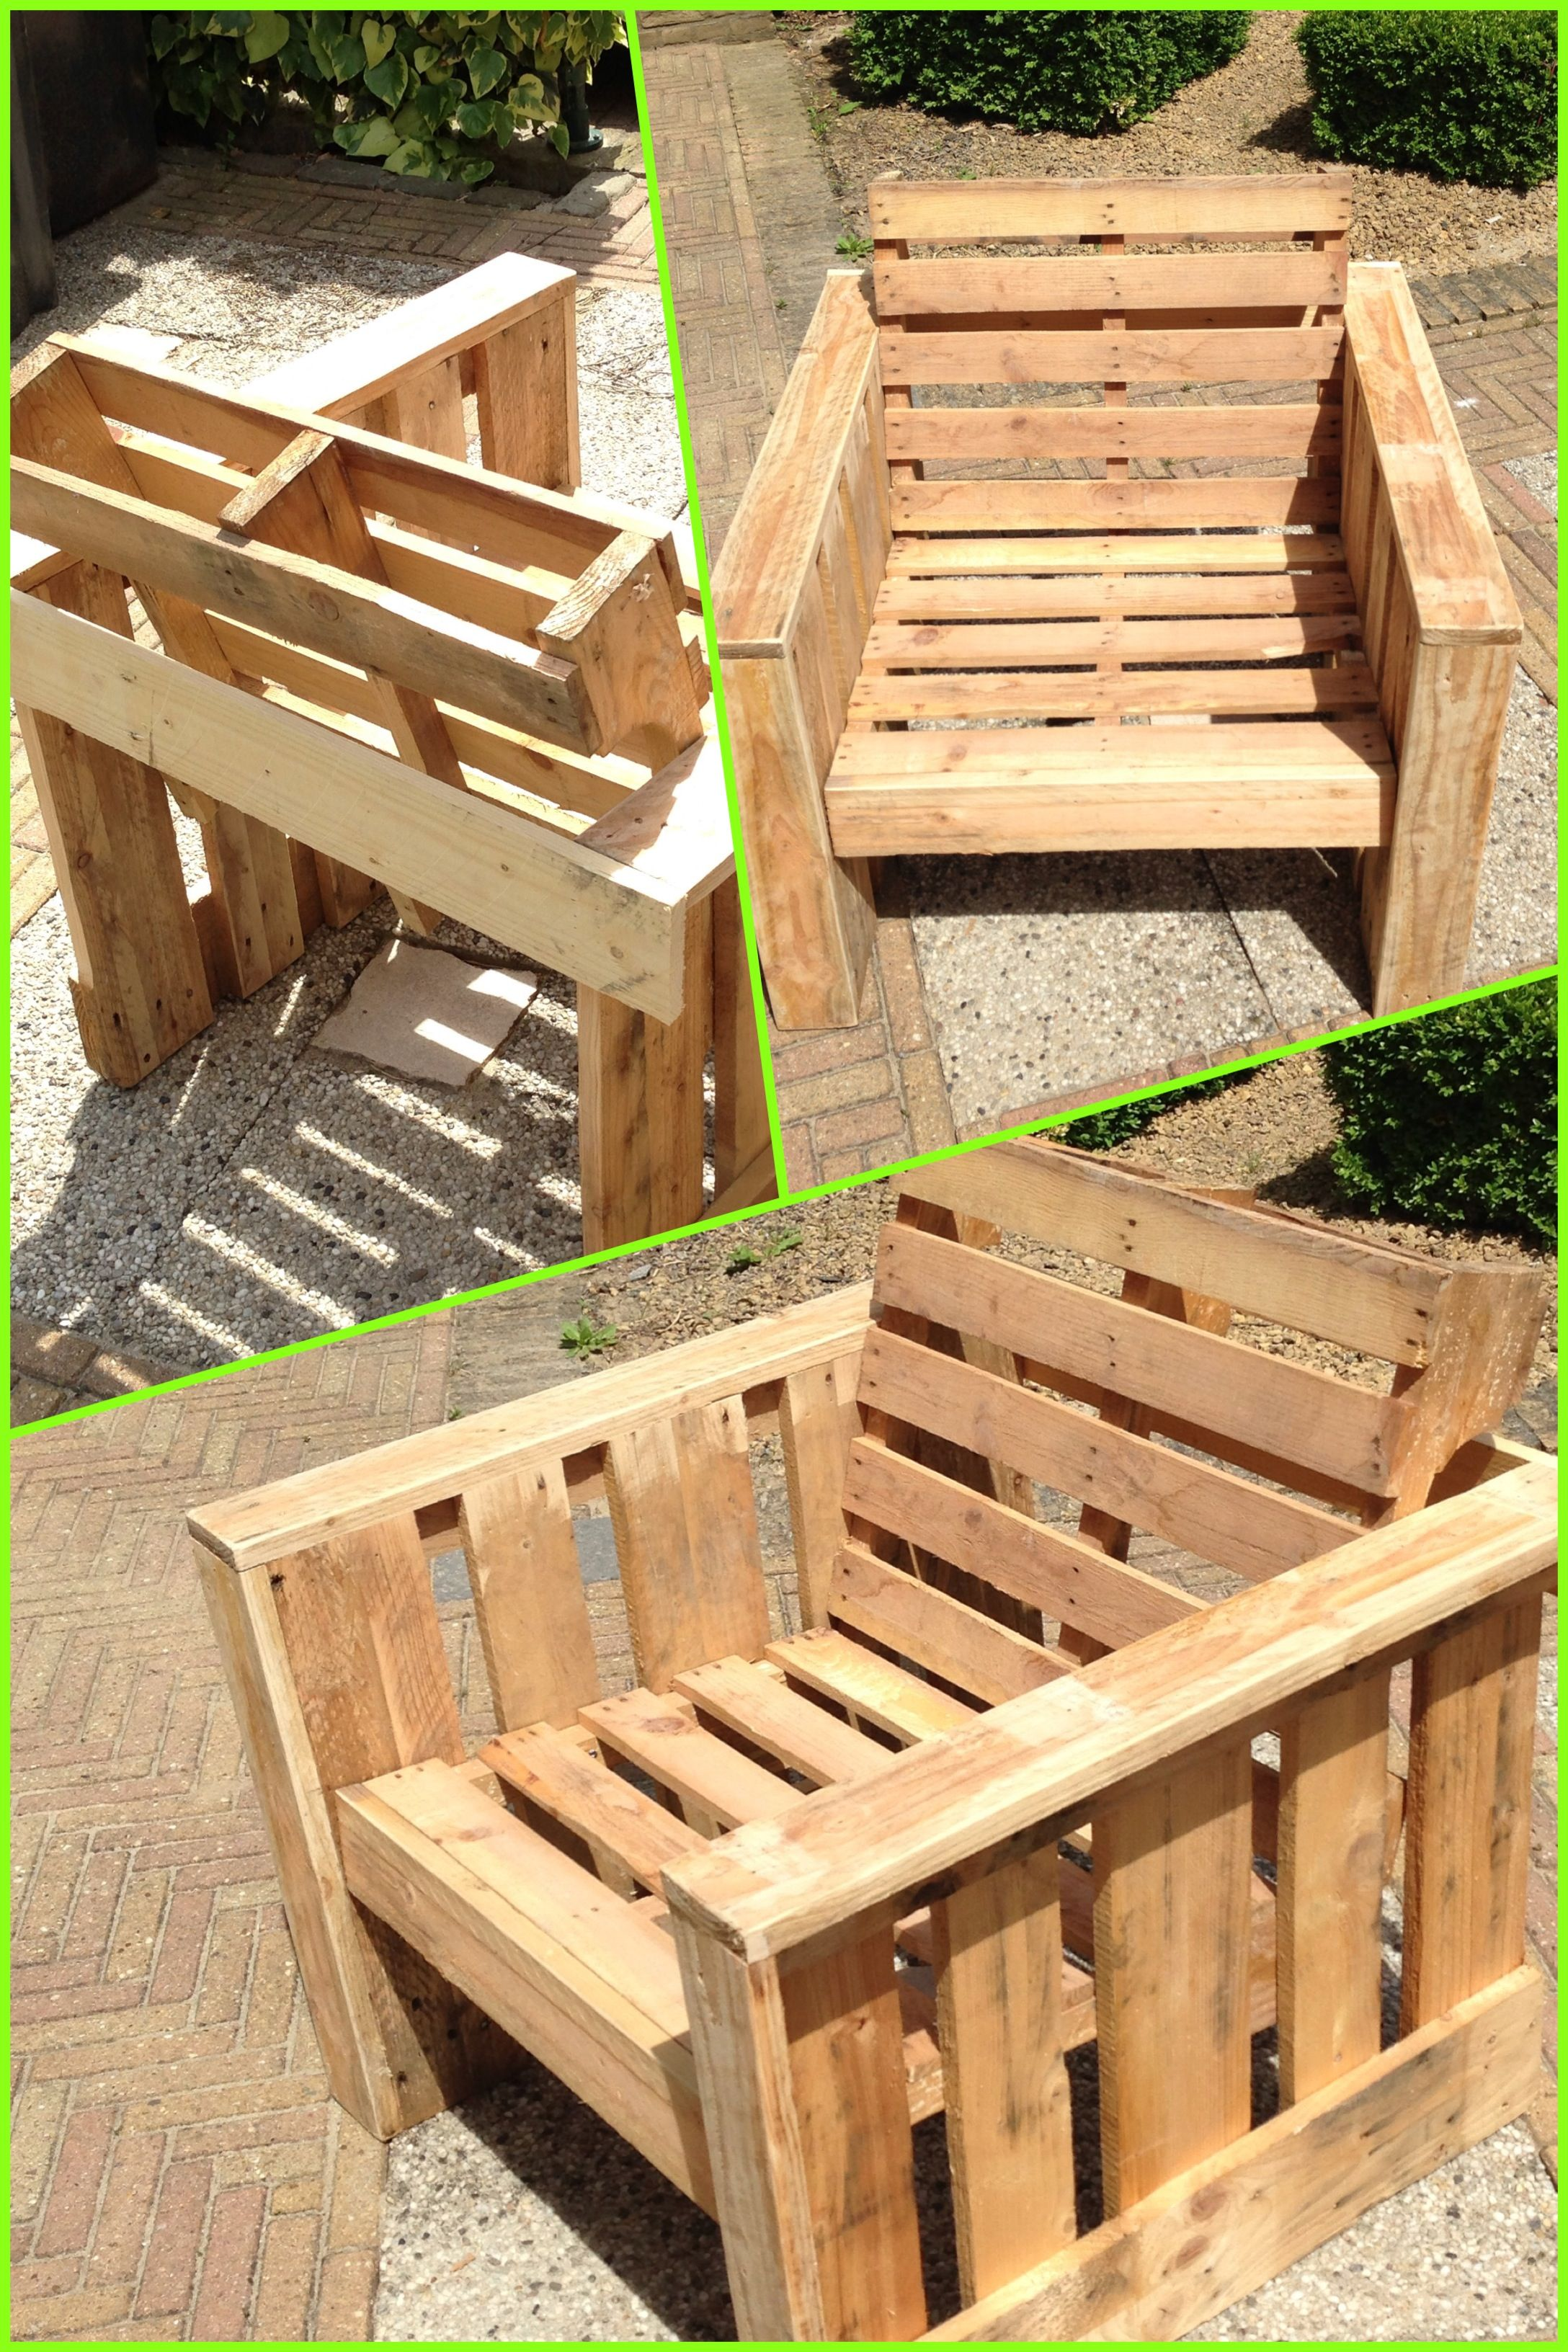 Recycle upcycle reclaimed wooden garden furniture DIY Re-purpose those  pallets that are destined for the dump. pallets into furniture, garden  beds, ...